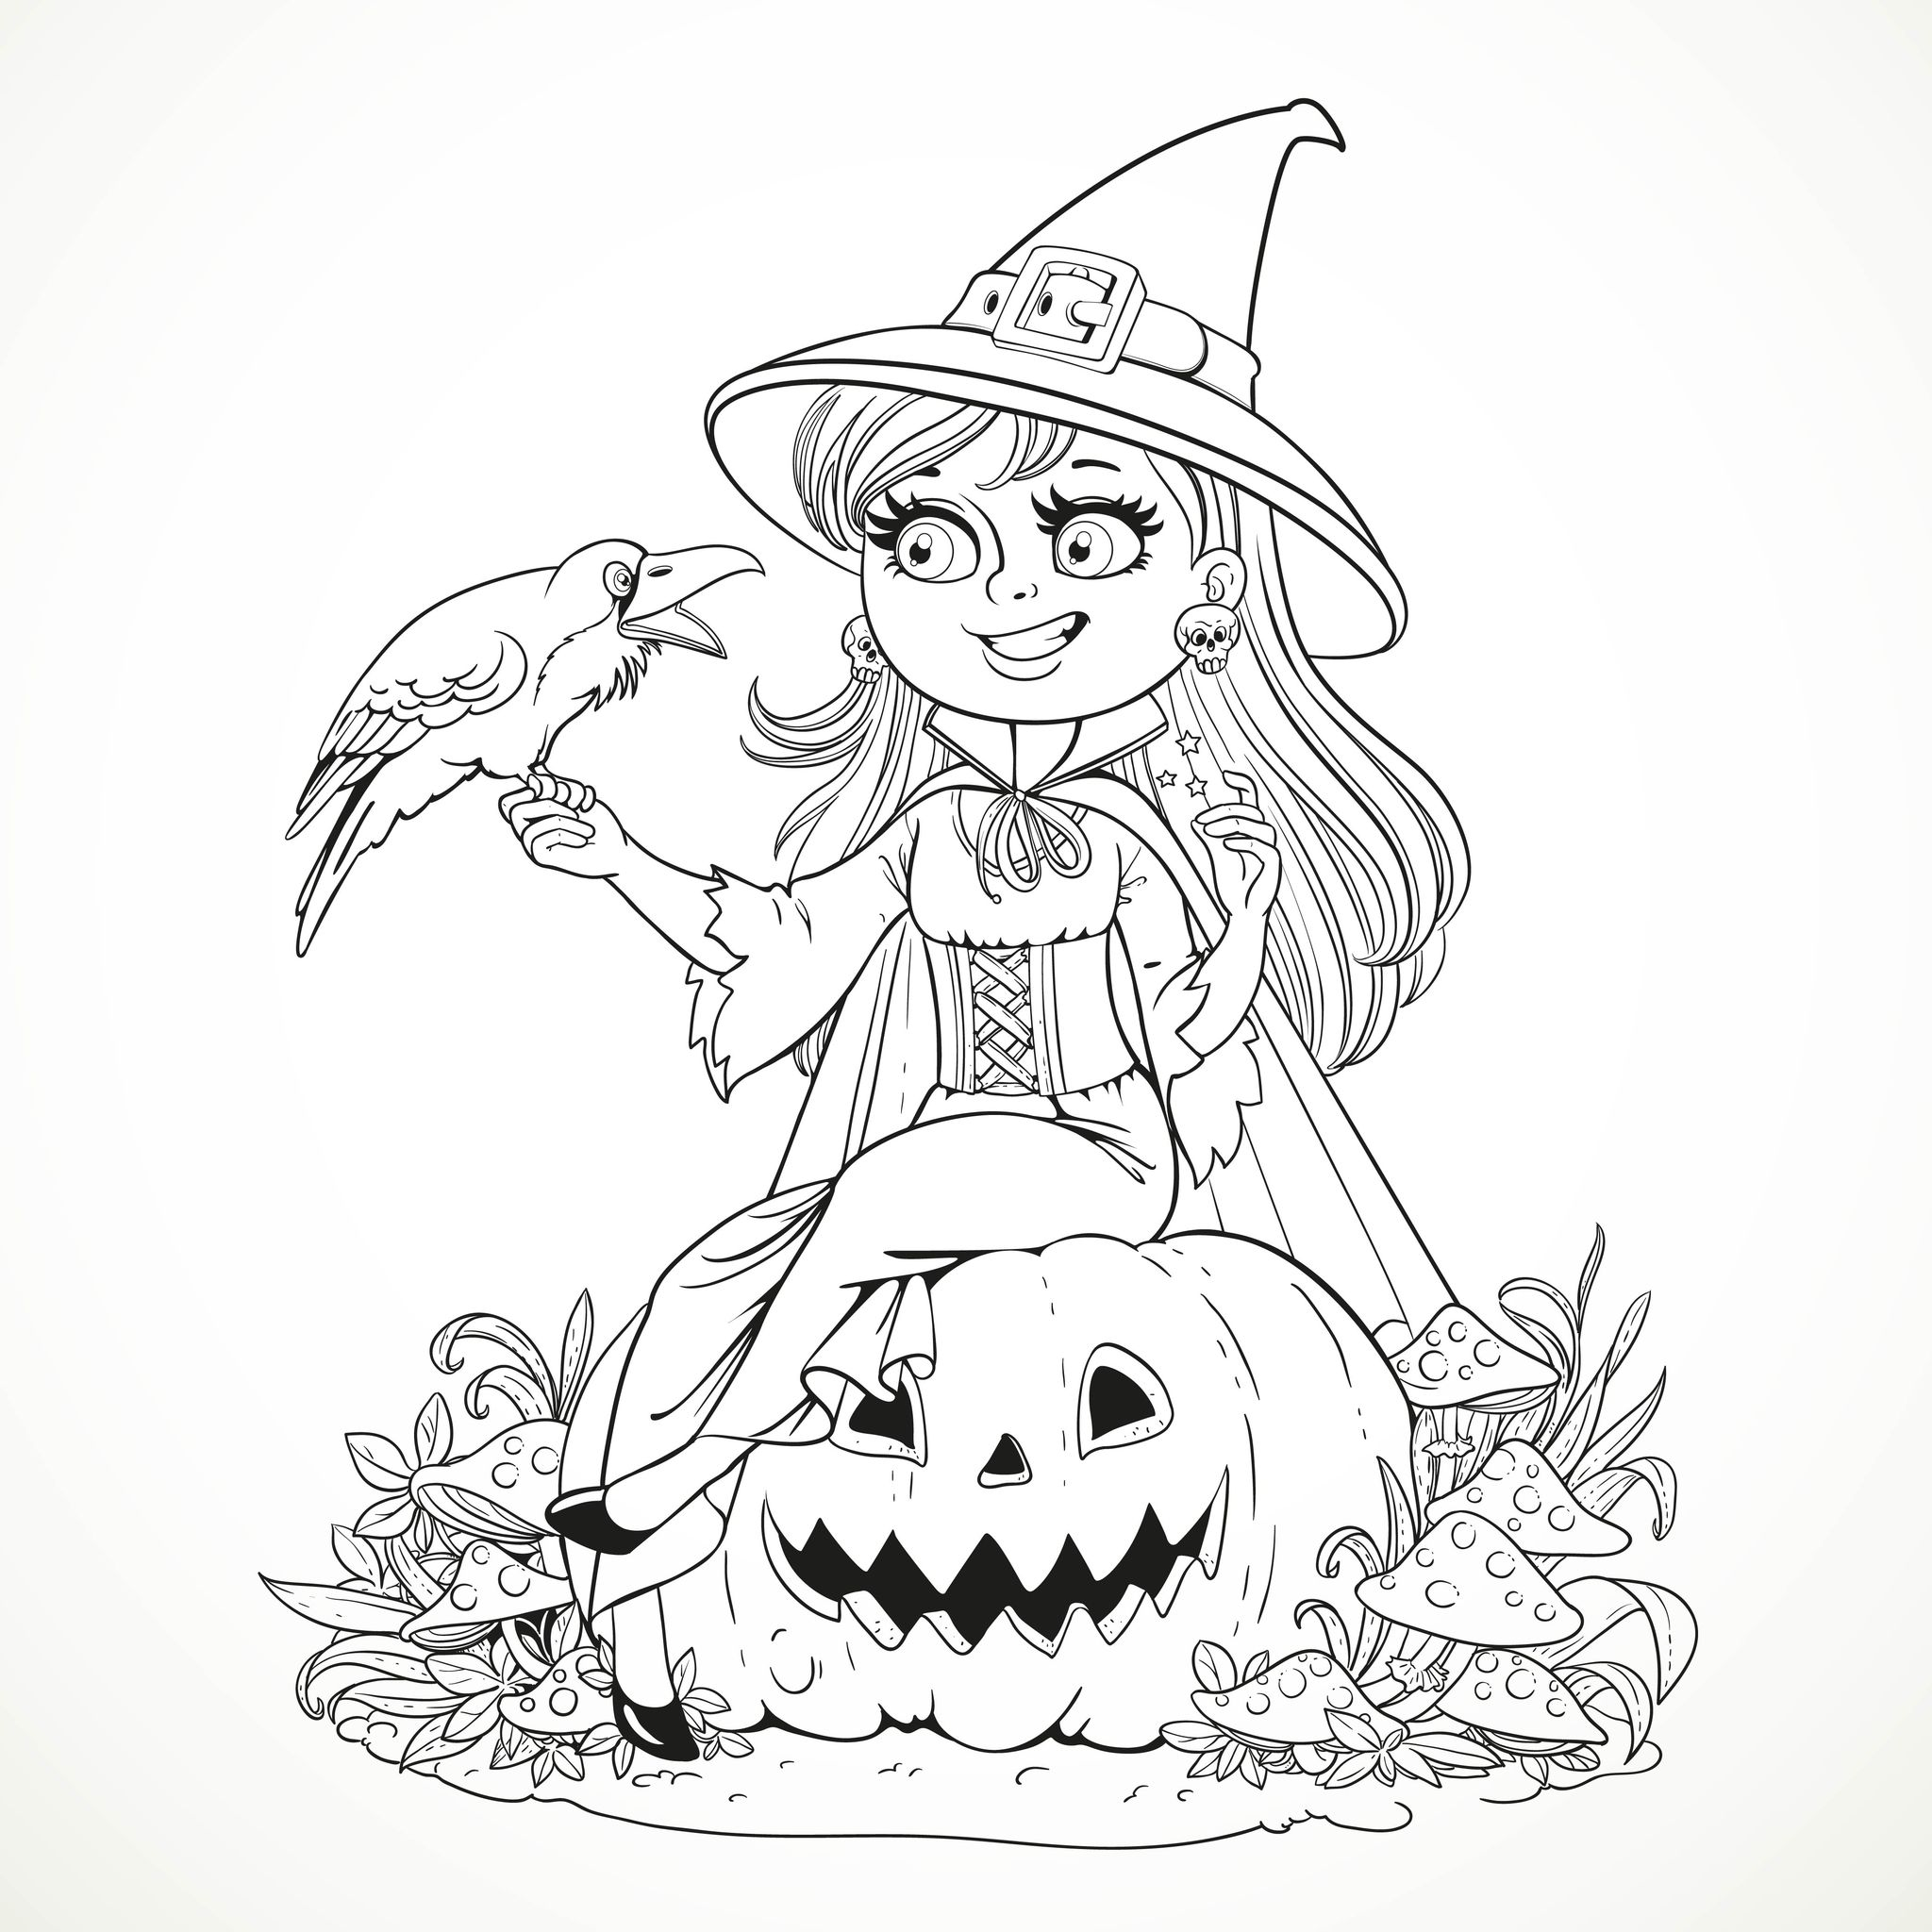 Halloween Coloring Pages For Boys At Getdrawings Com Free